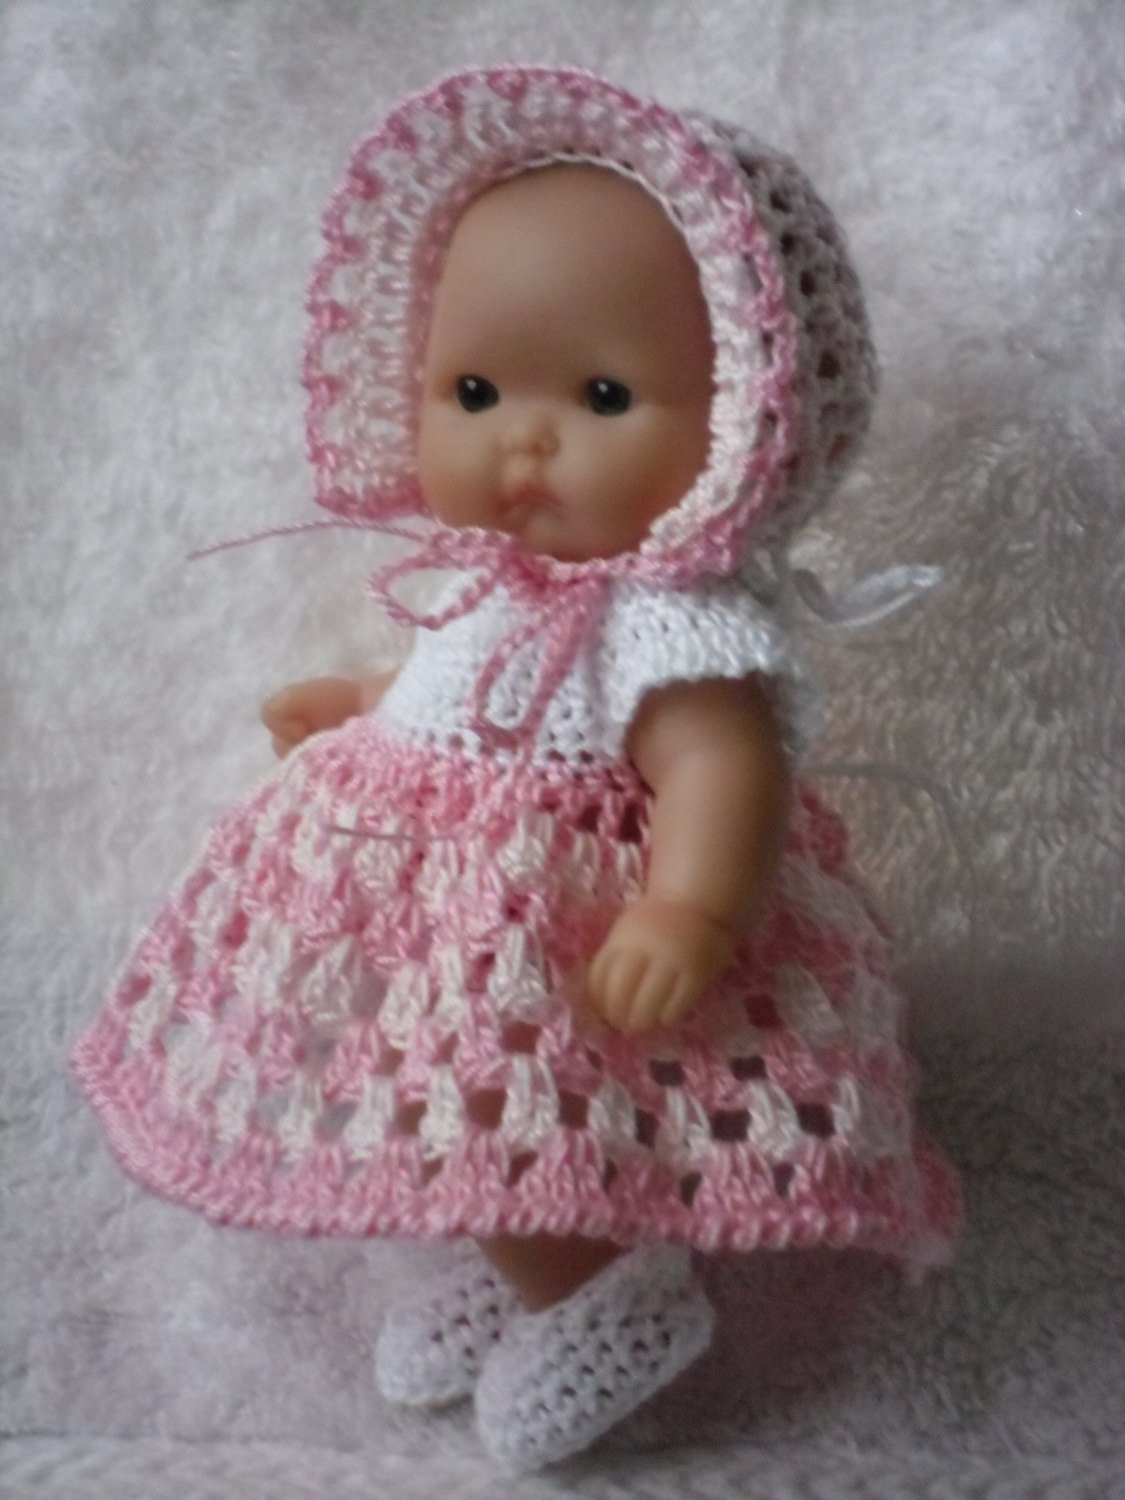 Crochet Baby Doll Pattern New Crochet Pattern for Berenguer 5 Inch Baby Doll Dress Of Amazing 40 Pics Crochet Baby Doll Pattern